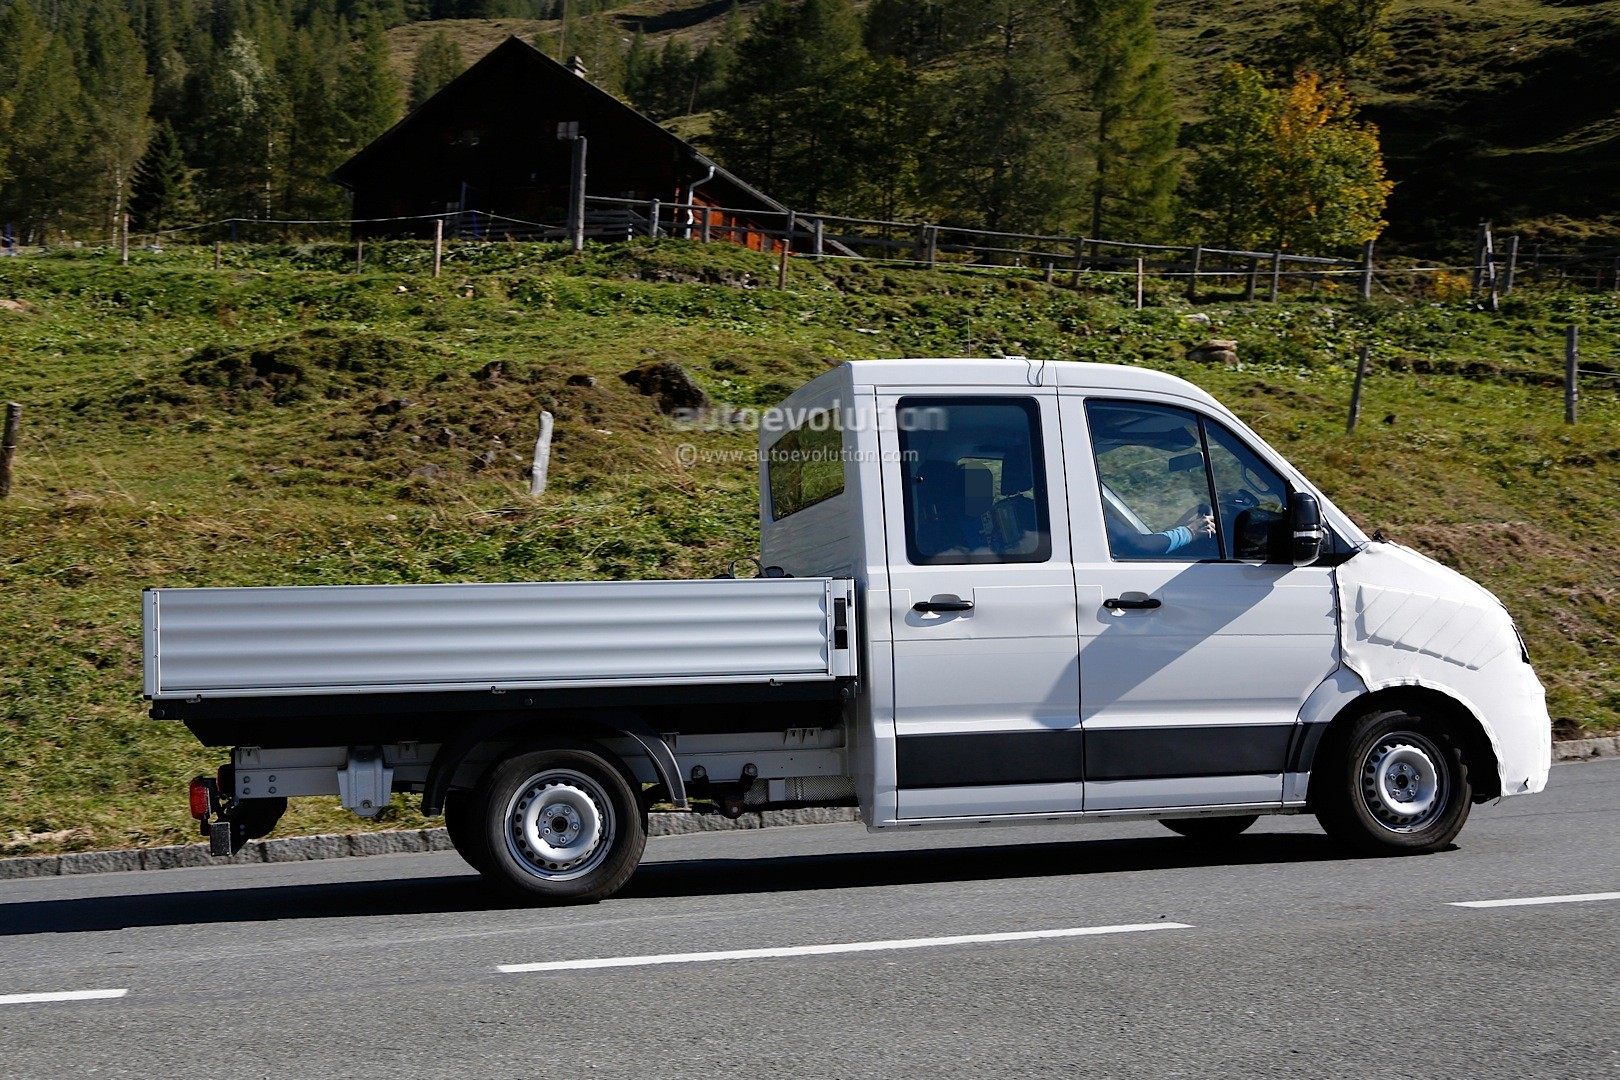 Spyshots: 2020 / 2020 Volkswagen Crafter Takes after the T6 ...